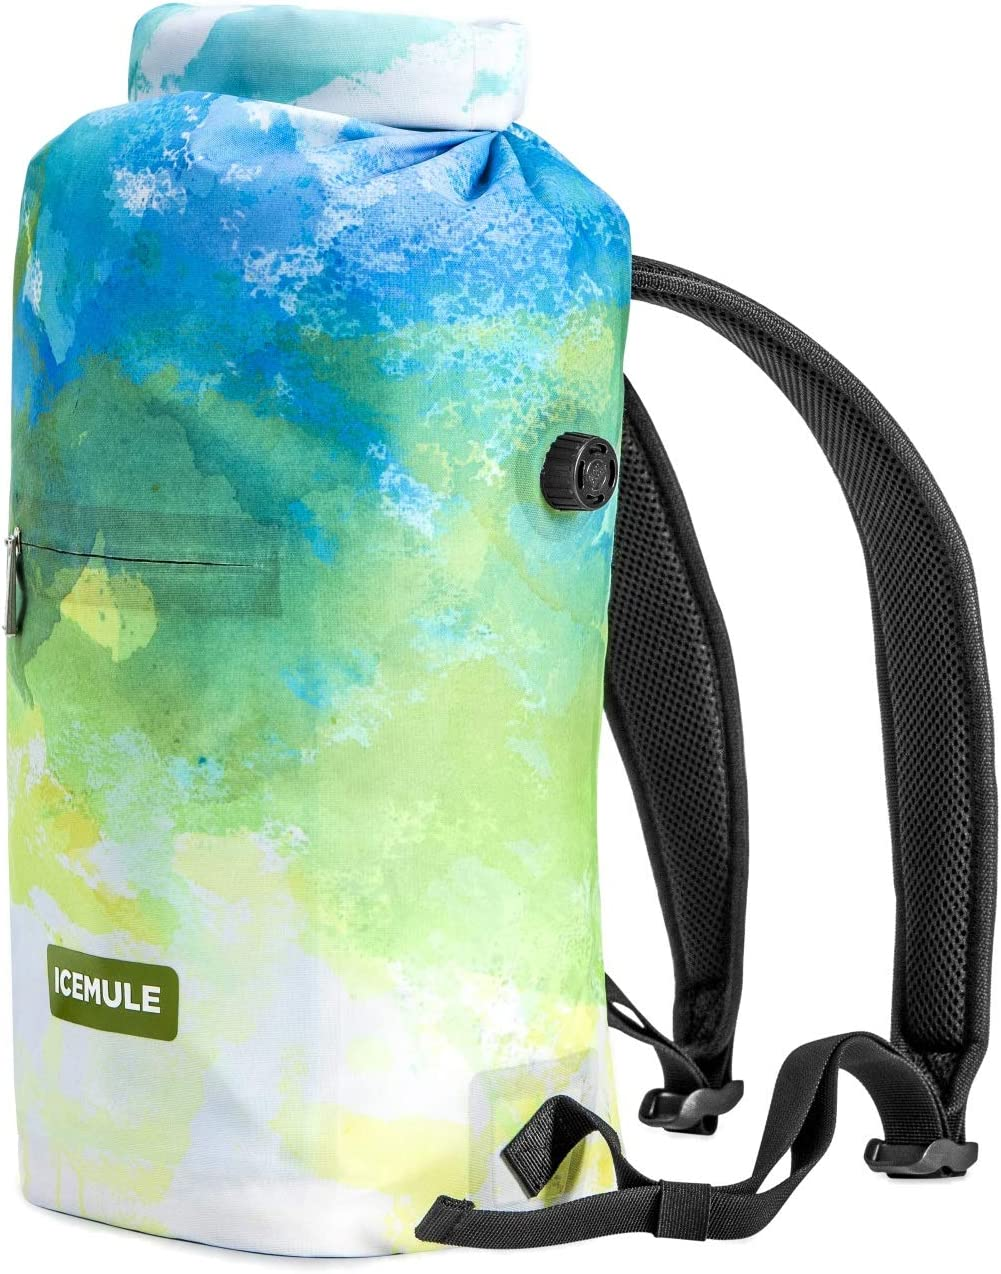 IceMule Jaunt Insulated Backpack Cooler Bag – Hands-Free, Collapsible, Waterproof and Soft-Sided, This Highly Portable Cooler is Ideal for Hiking, The Beach, Picnics, Camping, Fishing – Go Series